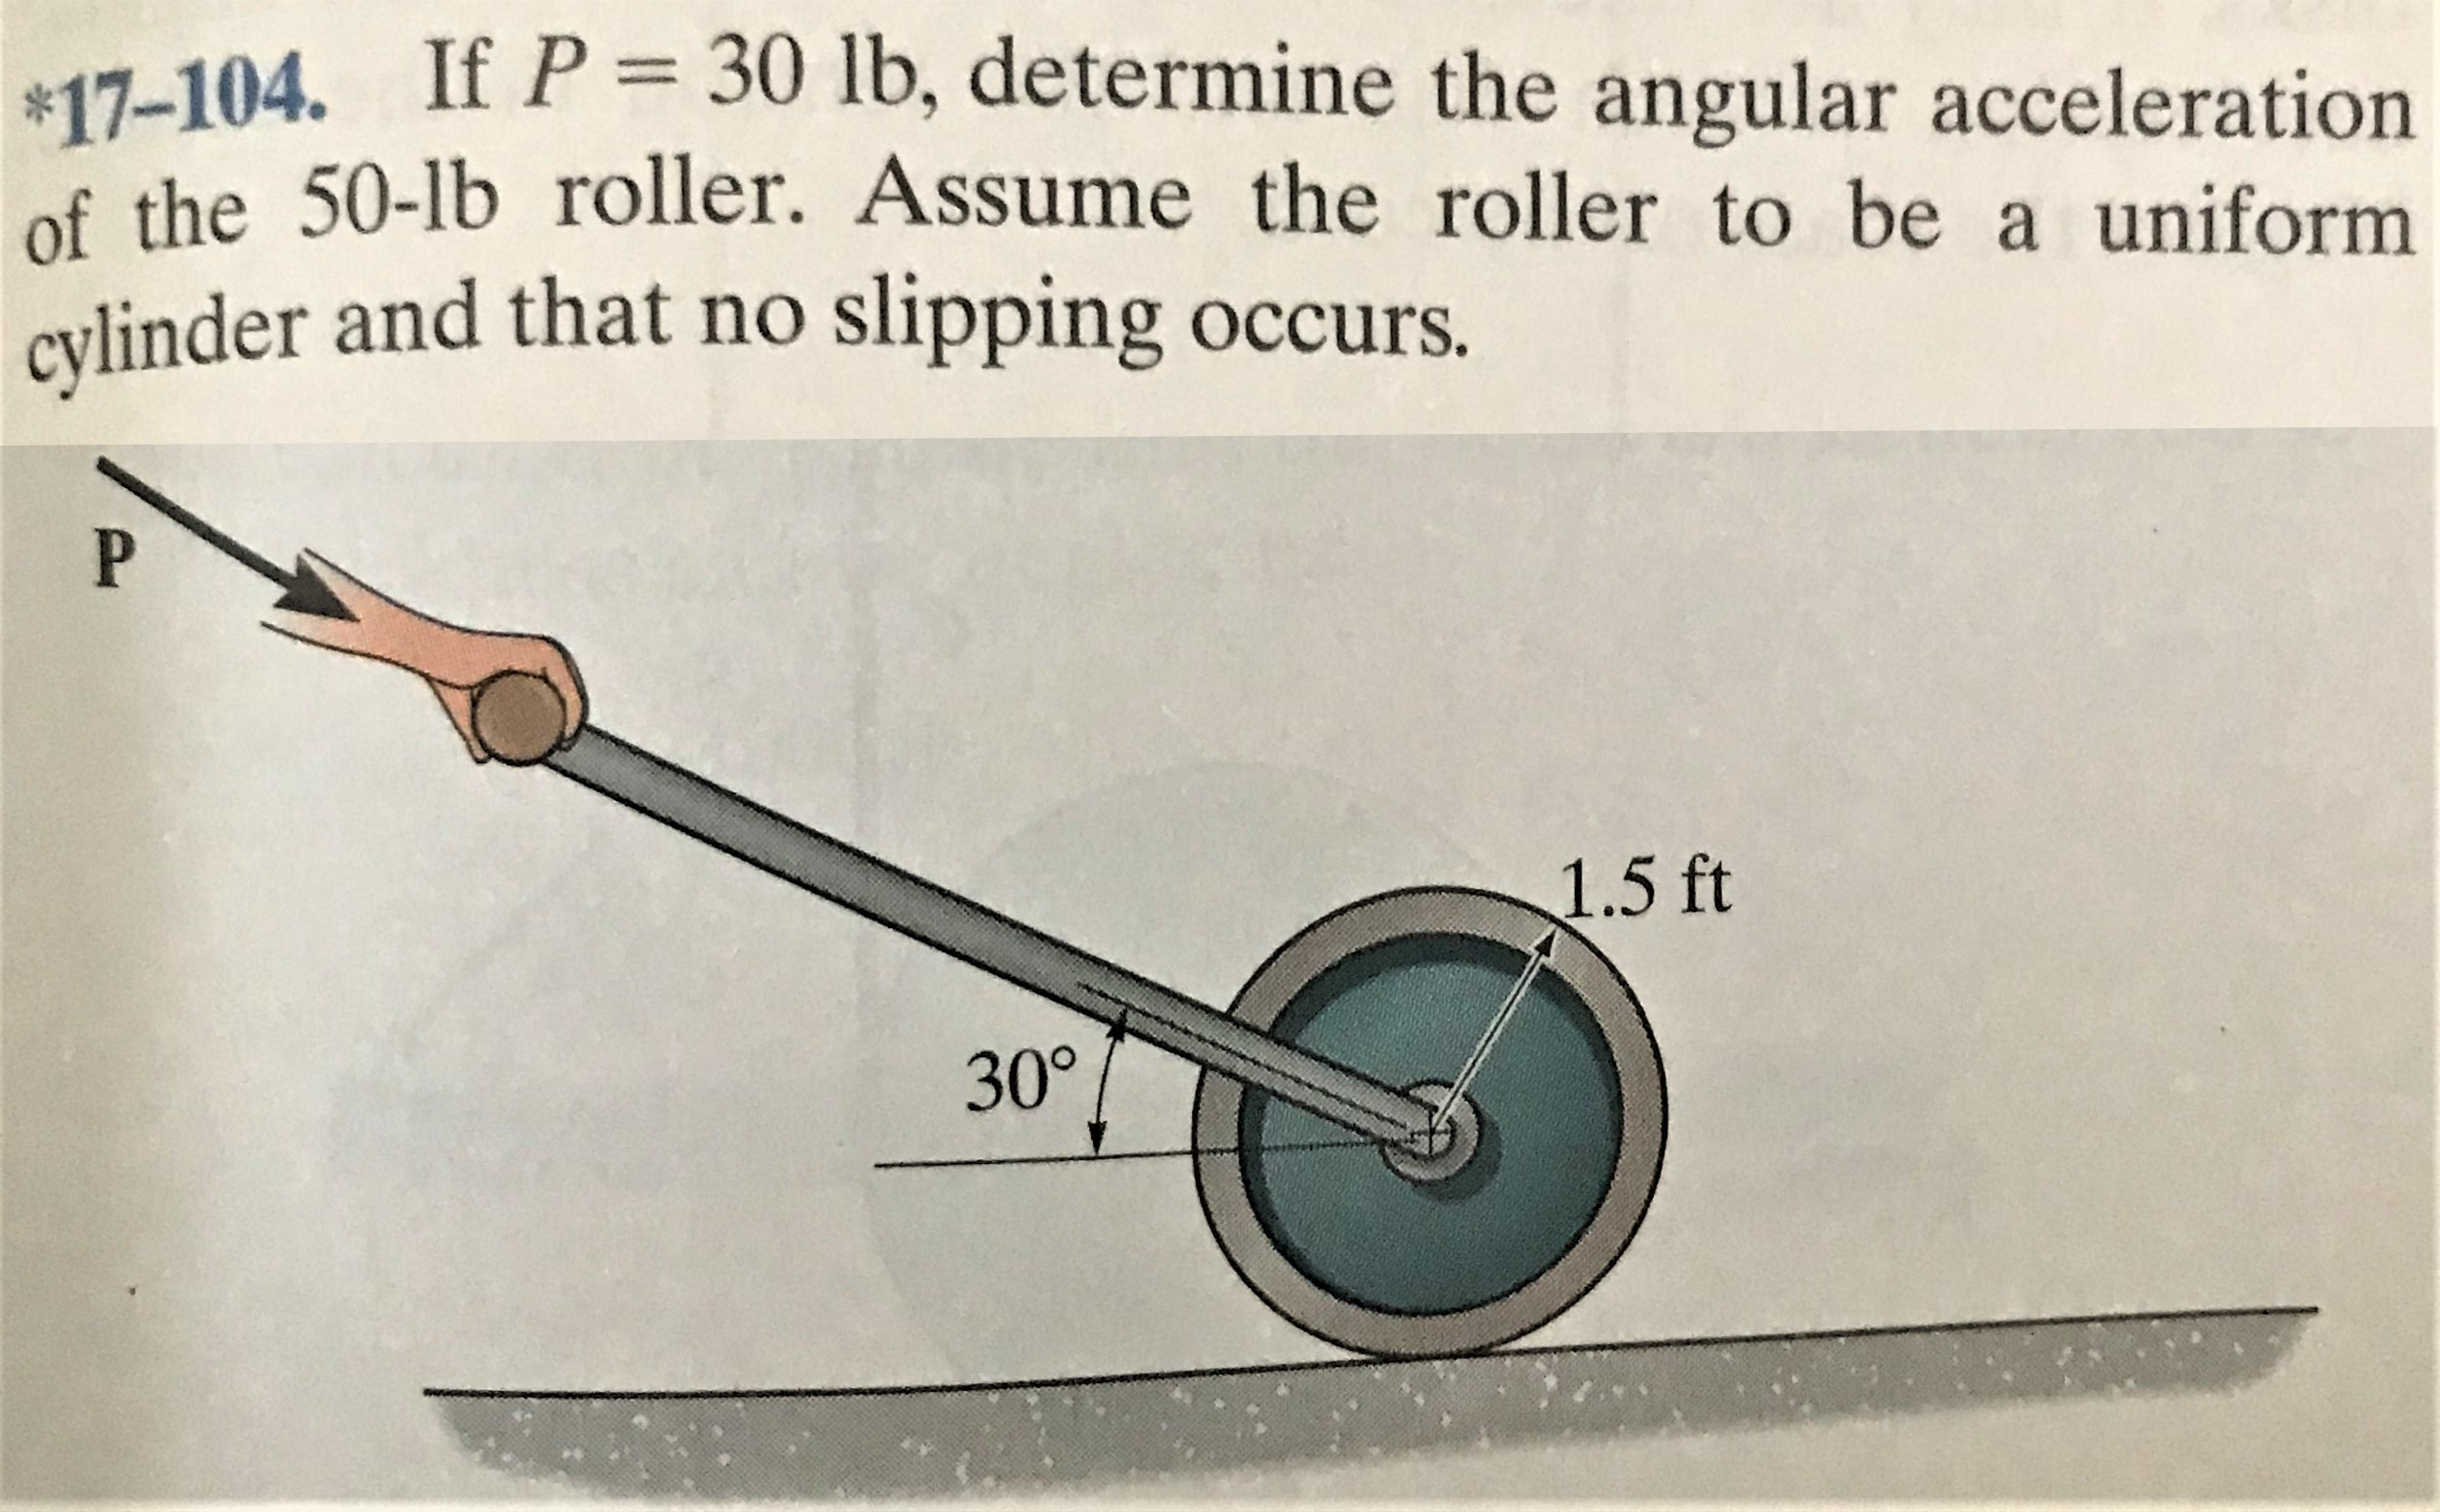 $17-104. If P = 30 lb, determine the angular acceleration of the 50-lb roller. Assume the roller to be a uniform cylinder and that no slipping occurs. 1.5 ft 30°